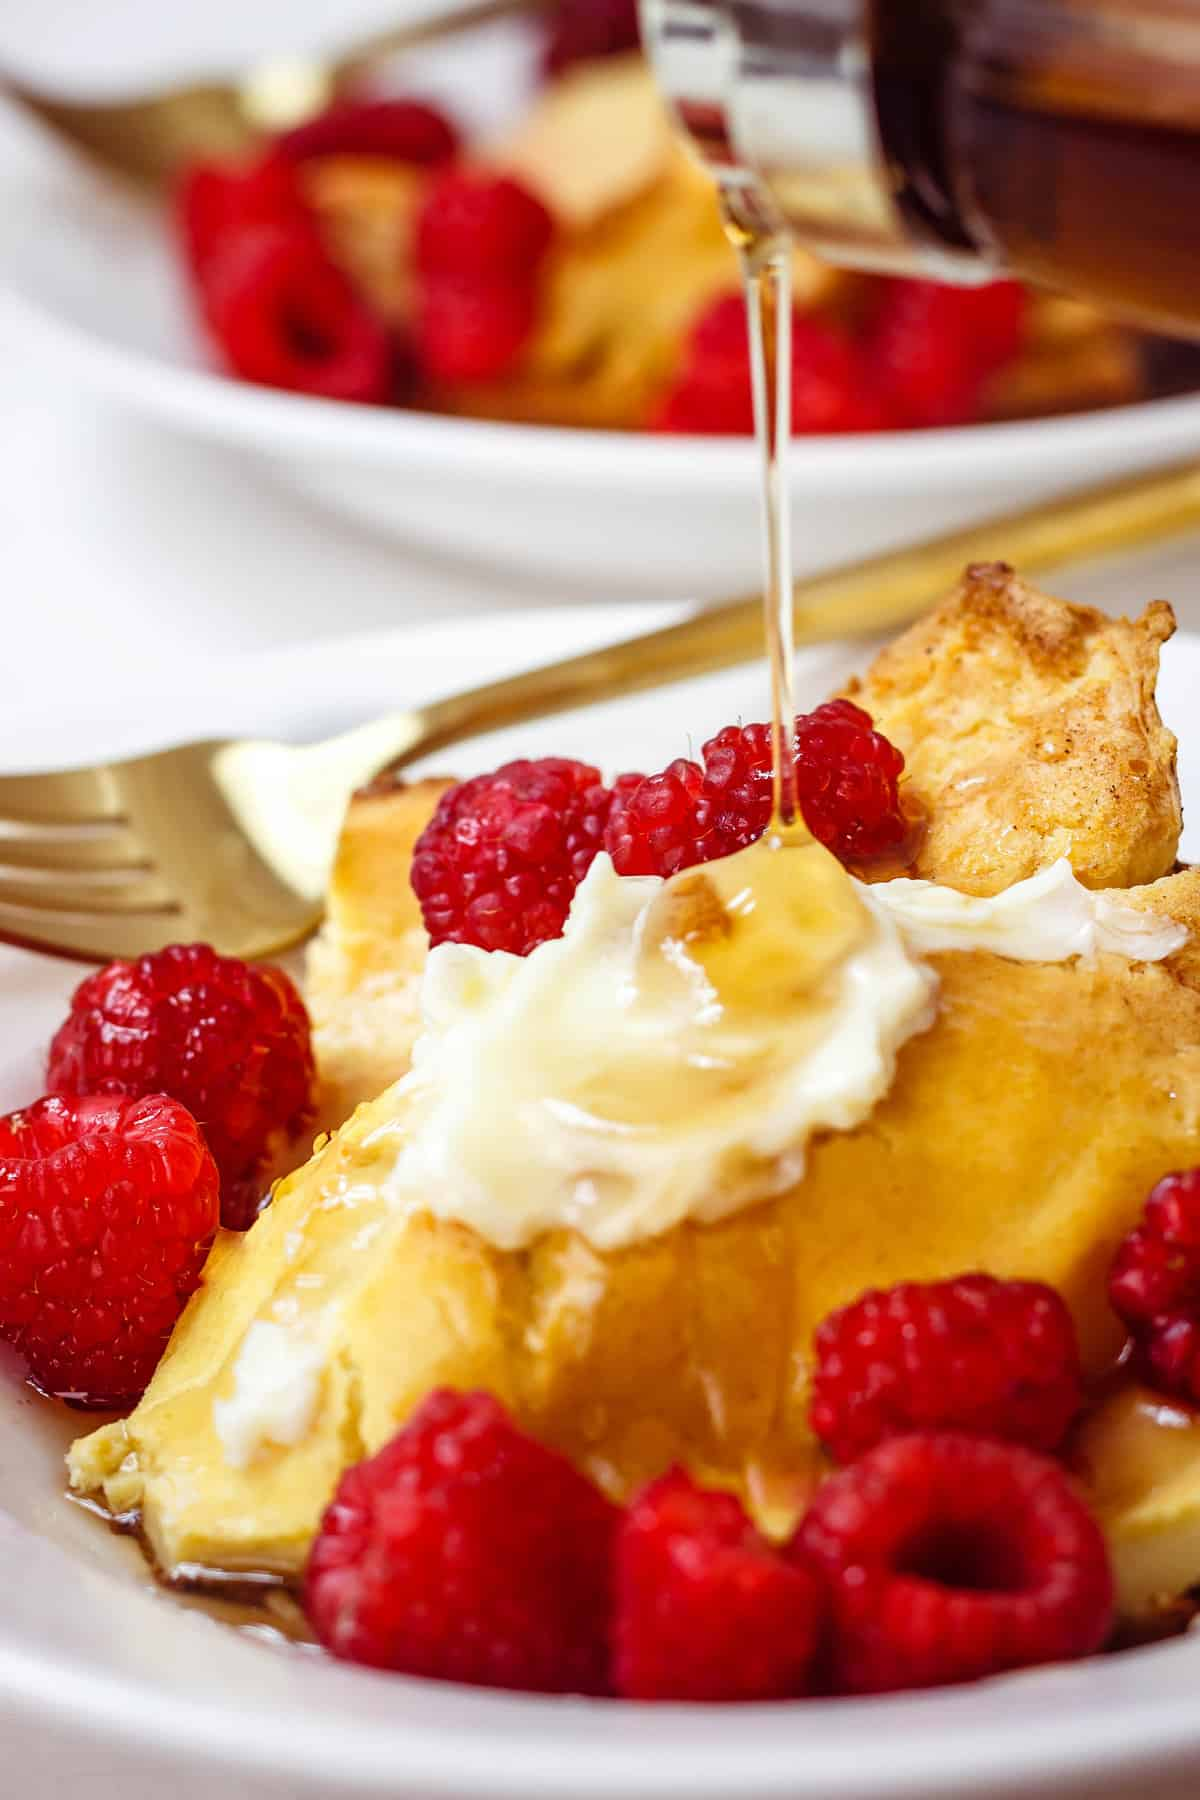 Gluten-free German pancakes on a white plate with raspberries and butter on top and maple syrup being drizzled on top.